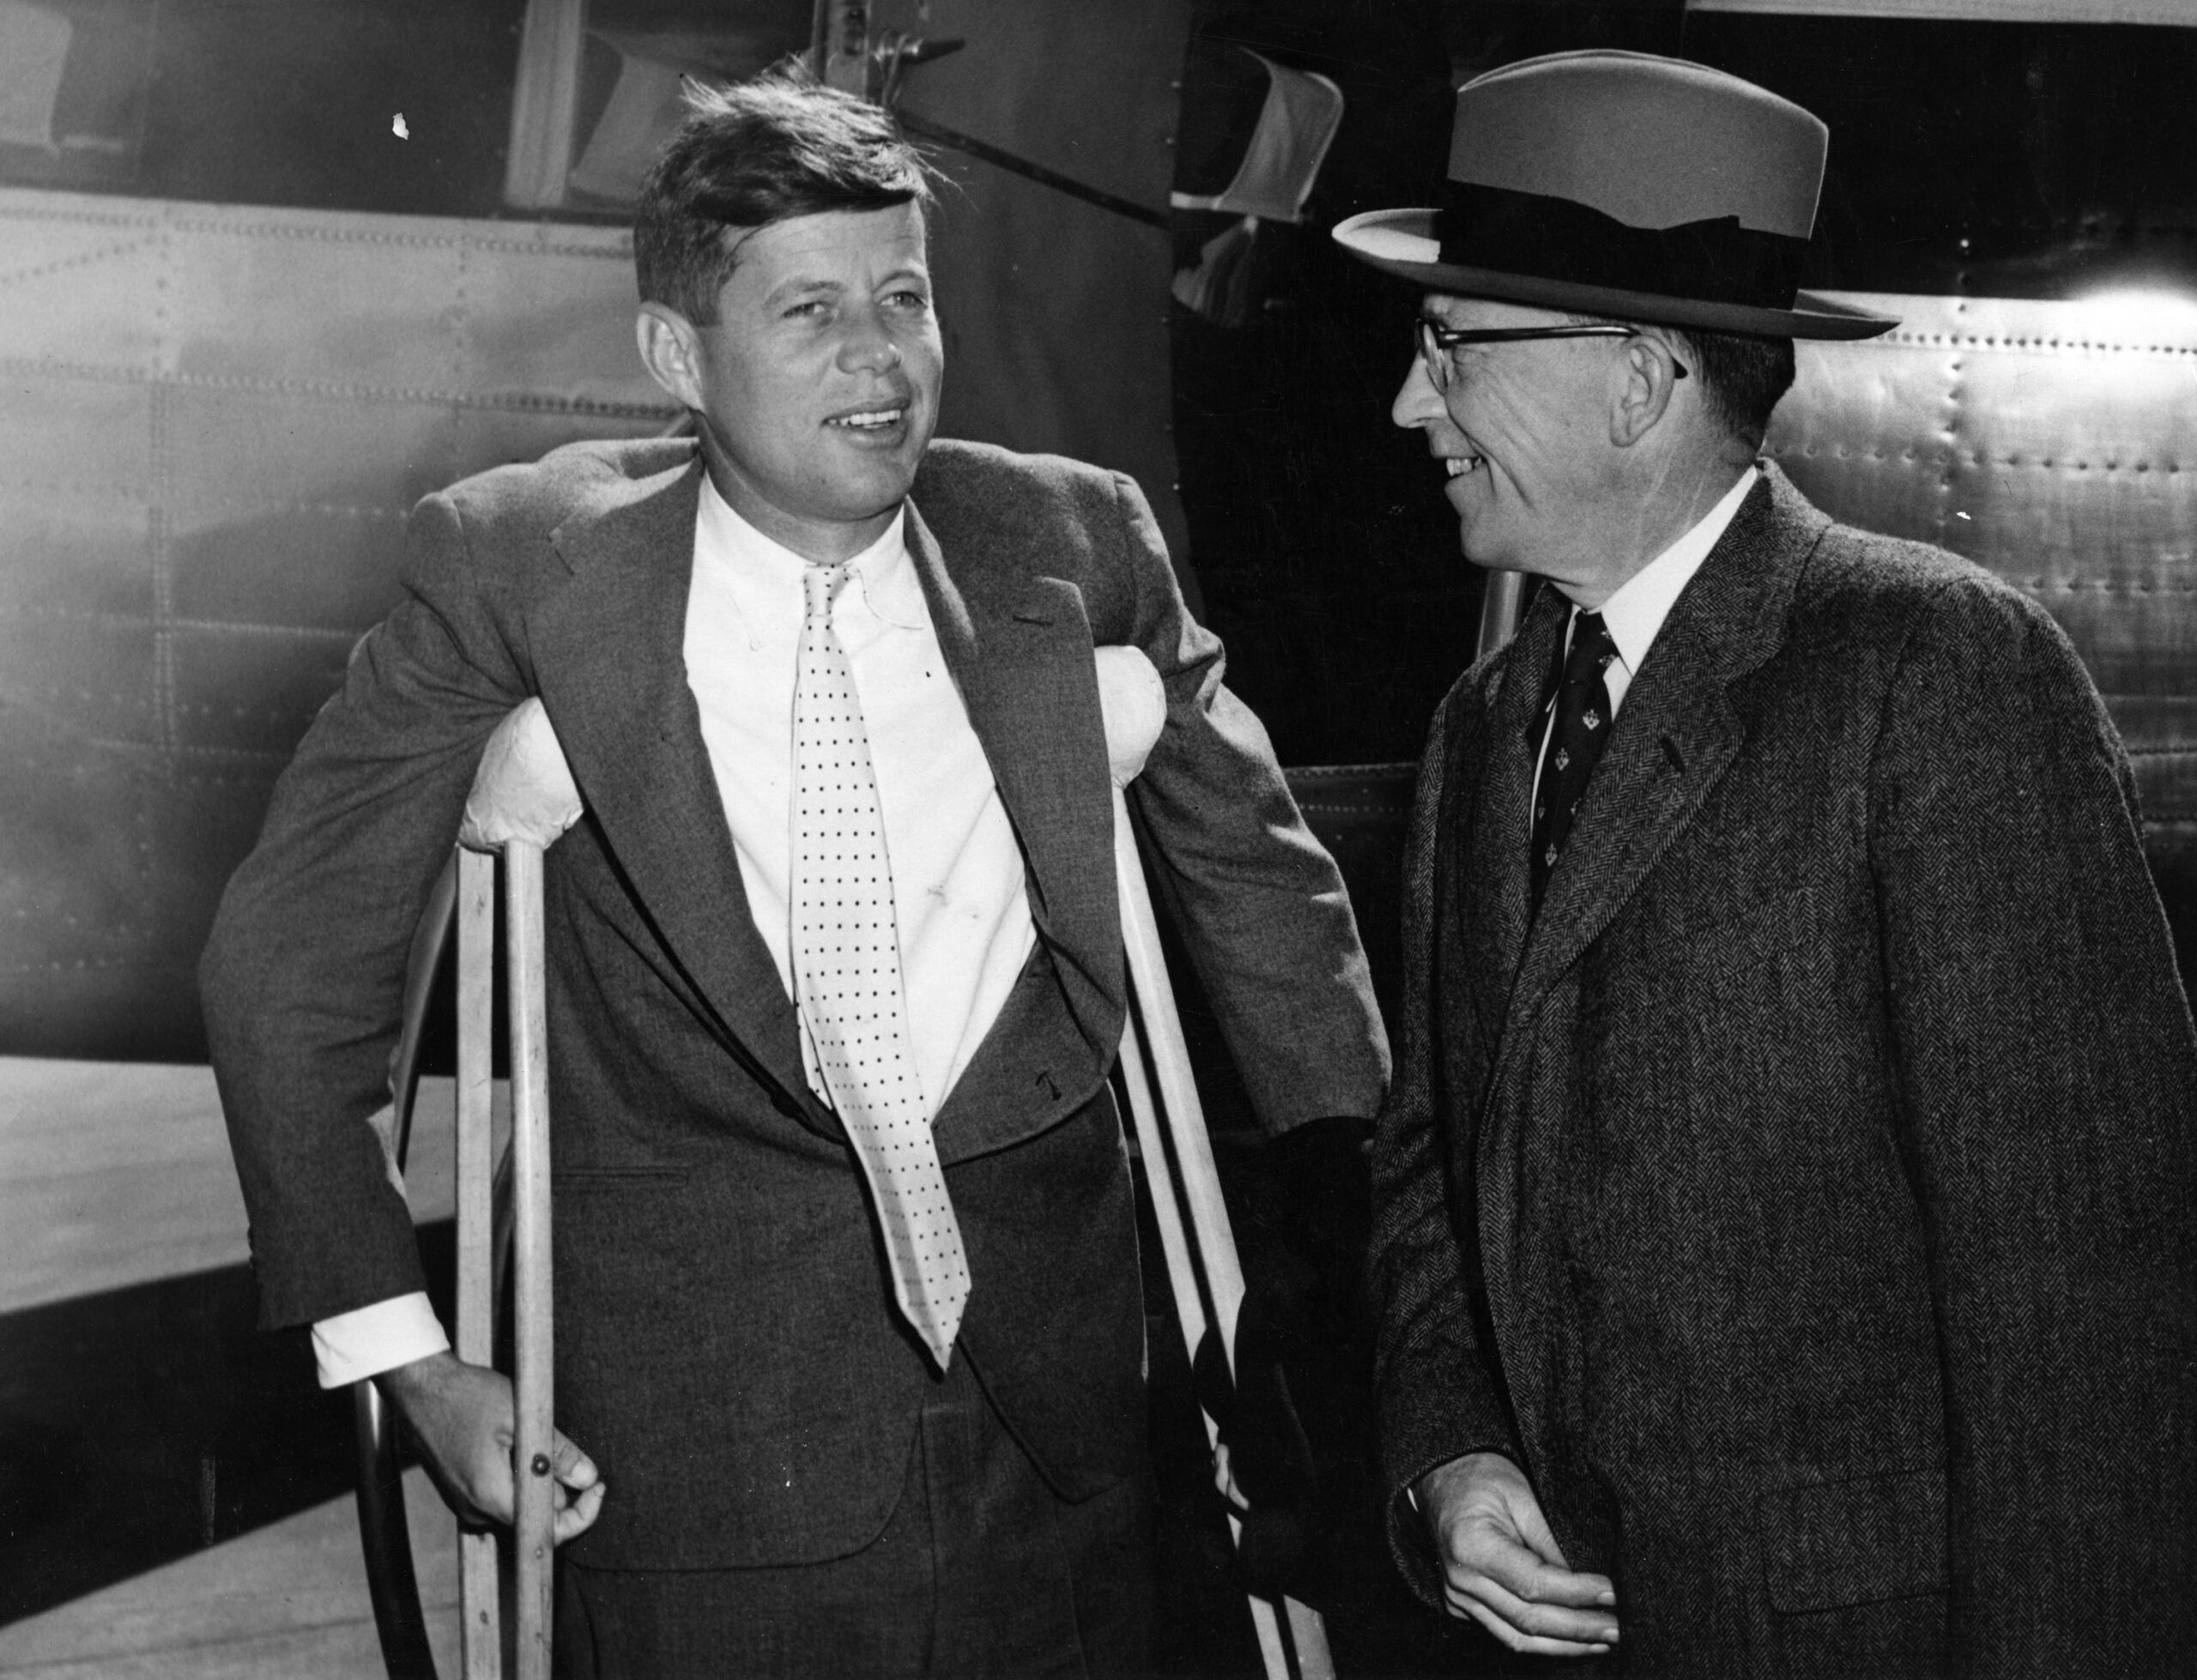 JFK had 5 brushes with death before that open-air Dallas car ride